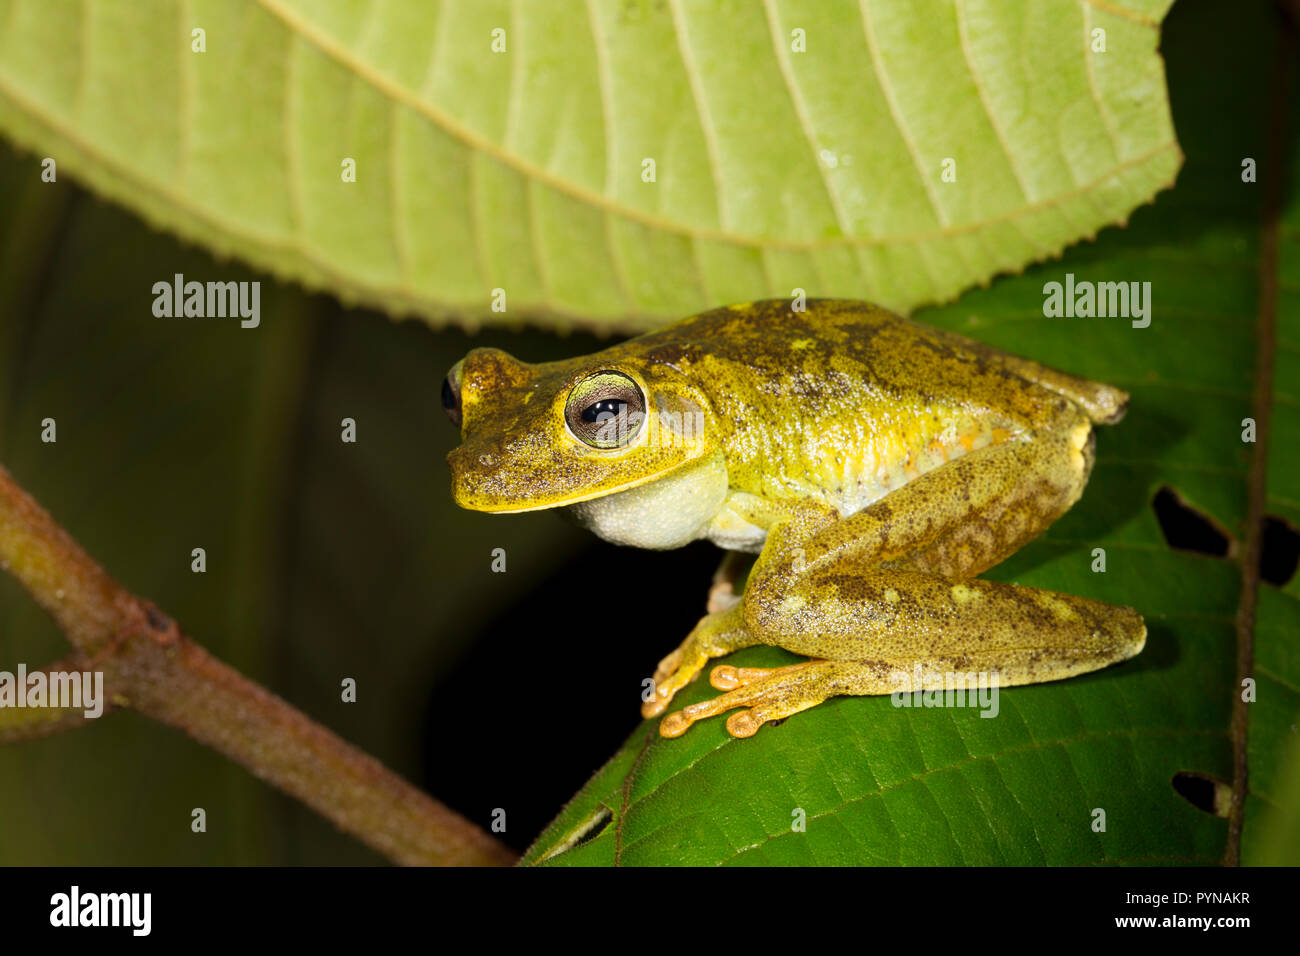 A tree frog photographed in the jungles of Suriname near Bakhuis. Suriname is noted for its unspoiled rainforests and biodiversity with a huge range o - Stock Image